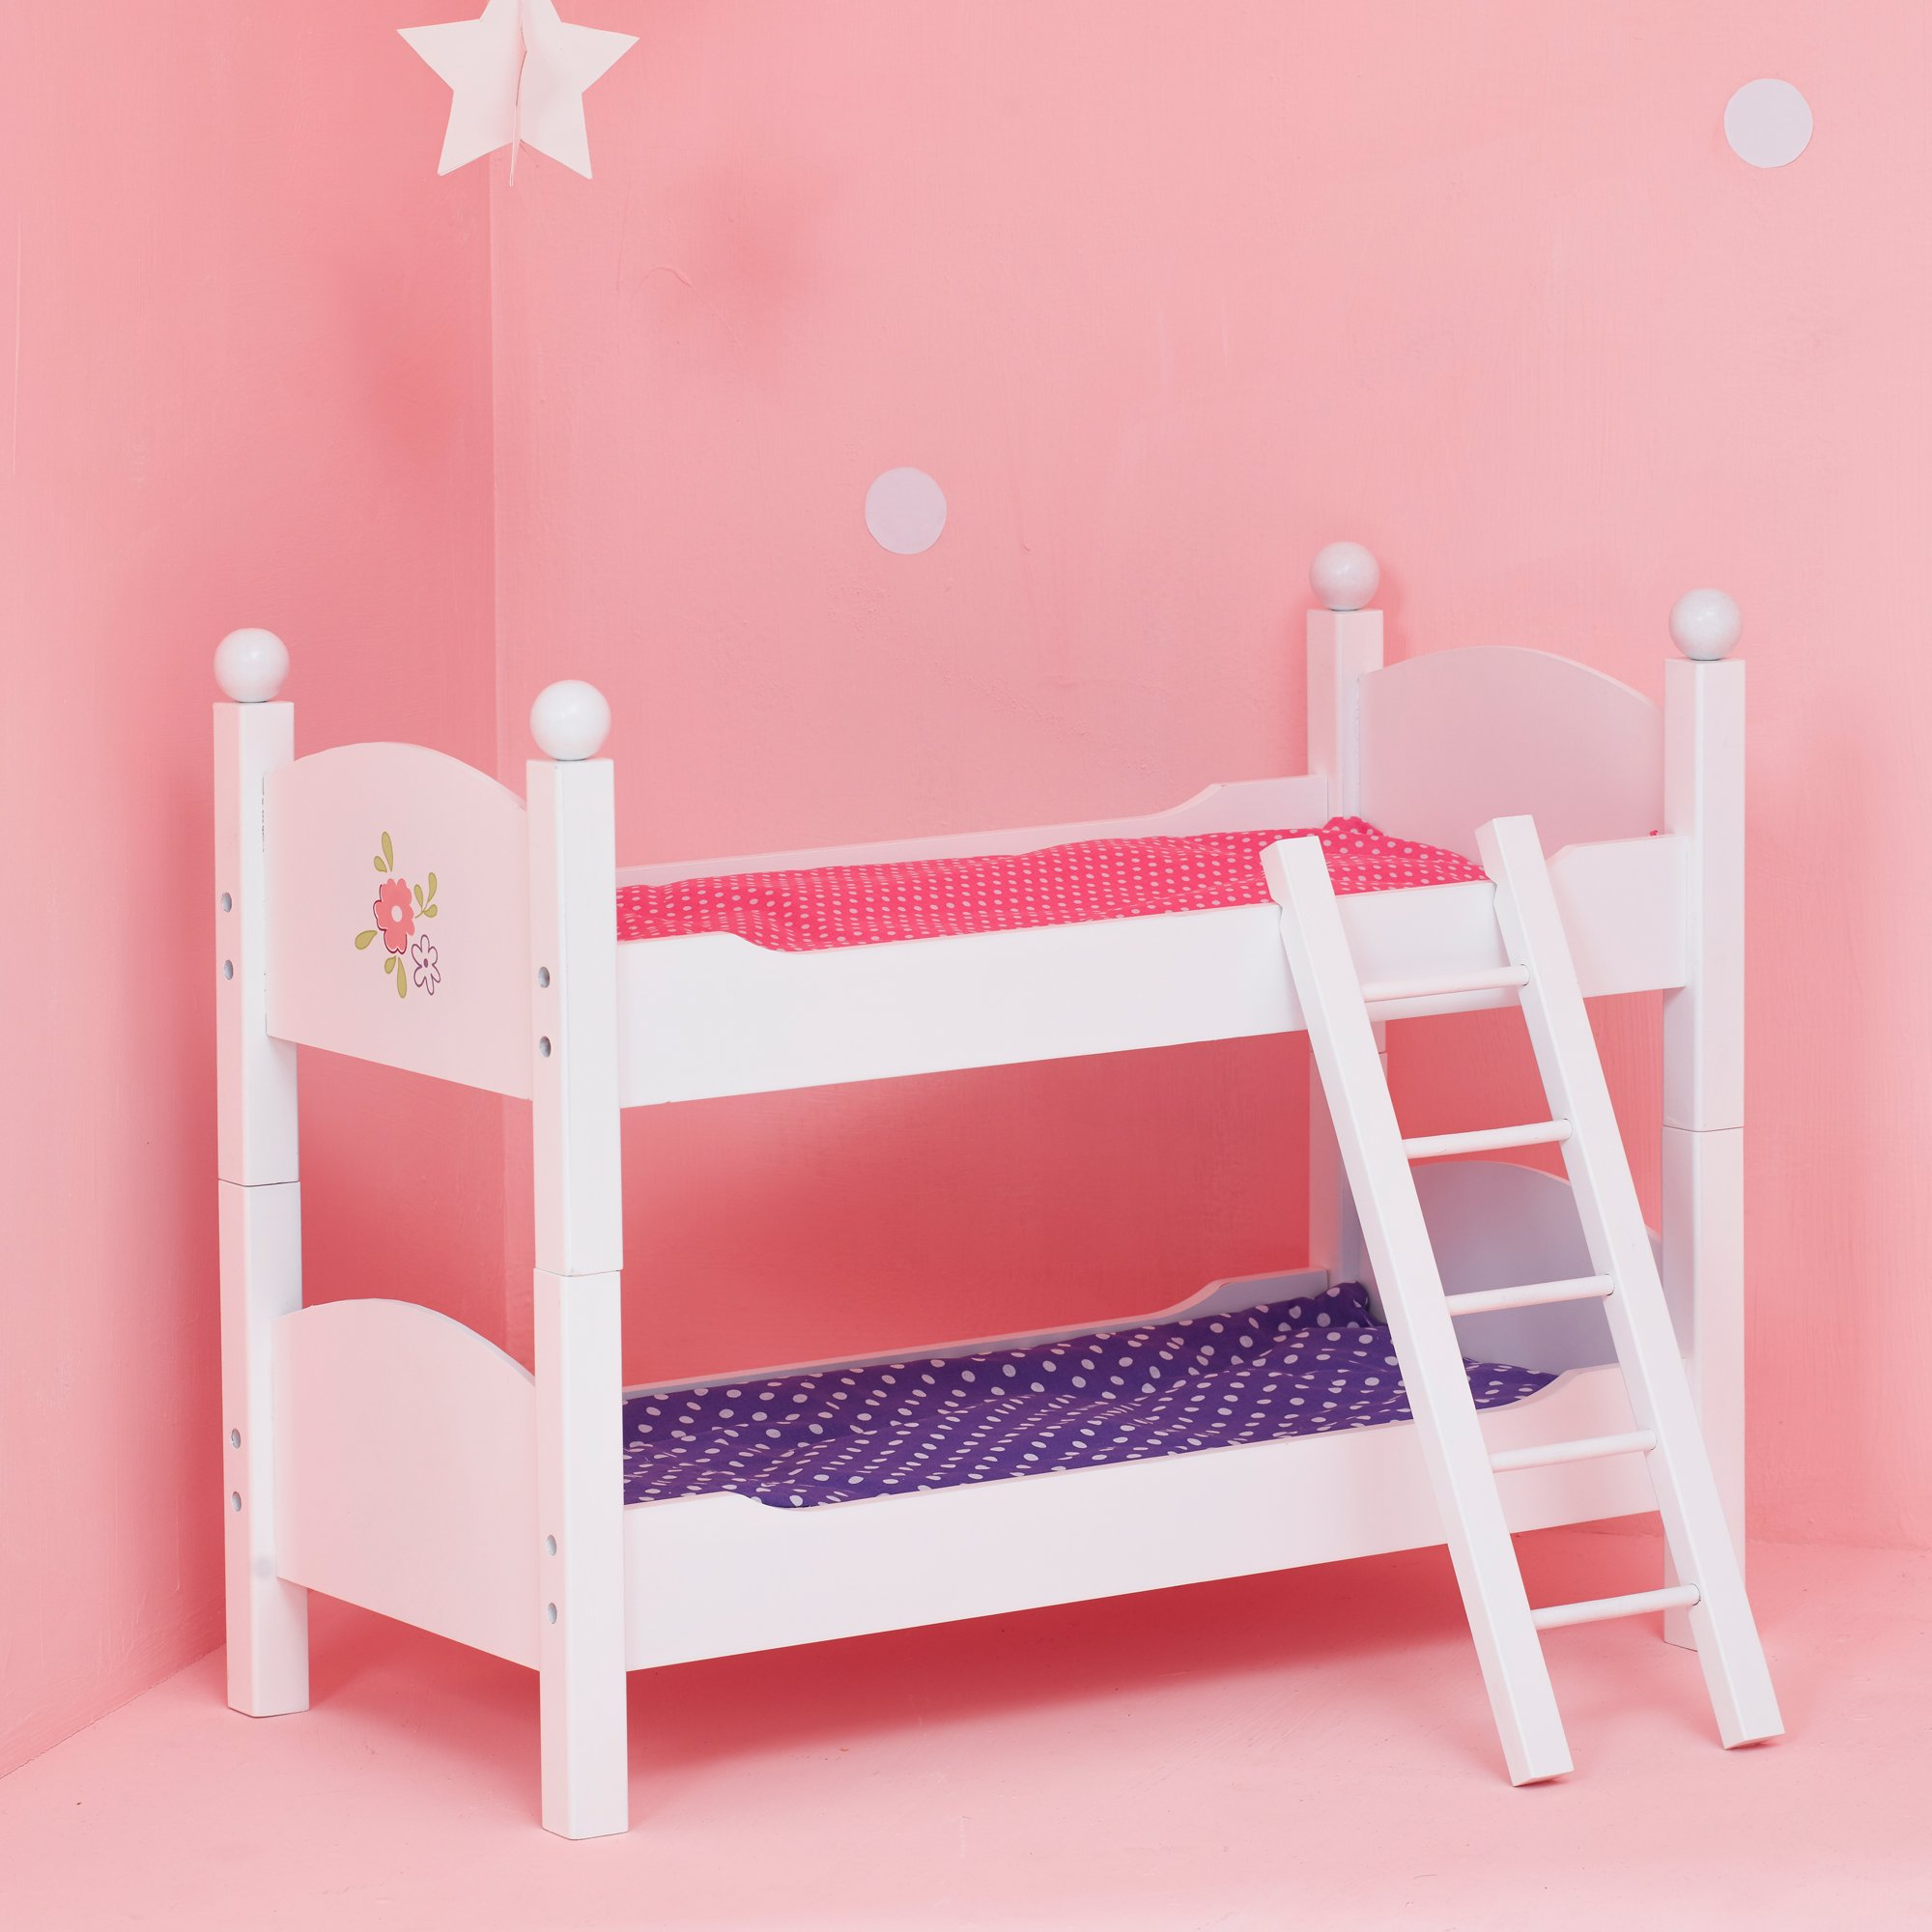 olivia 39 s little world princess double bunk bed white wooden 18 inch doll 812401019617 ebay. Black Bedroom Furniture Sets. Home Design Ideas